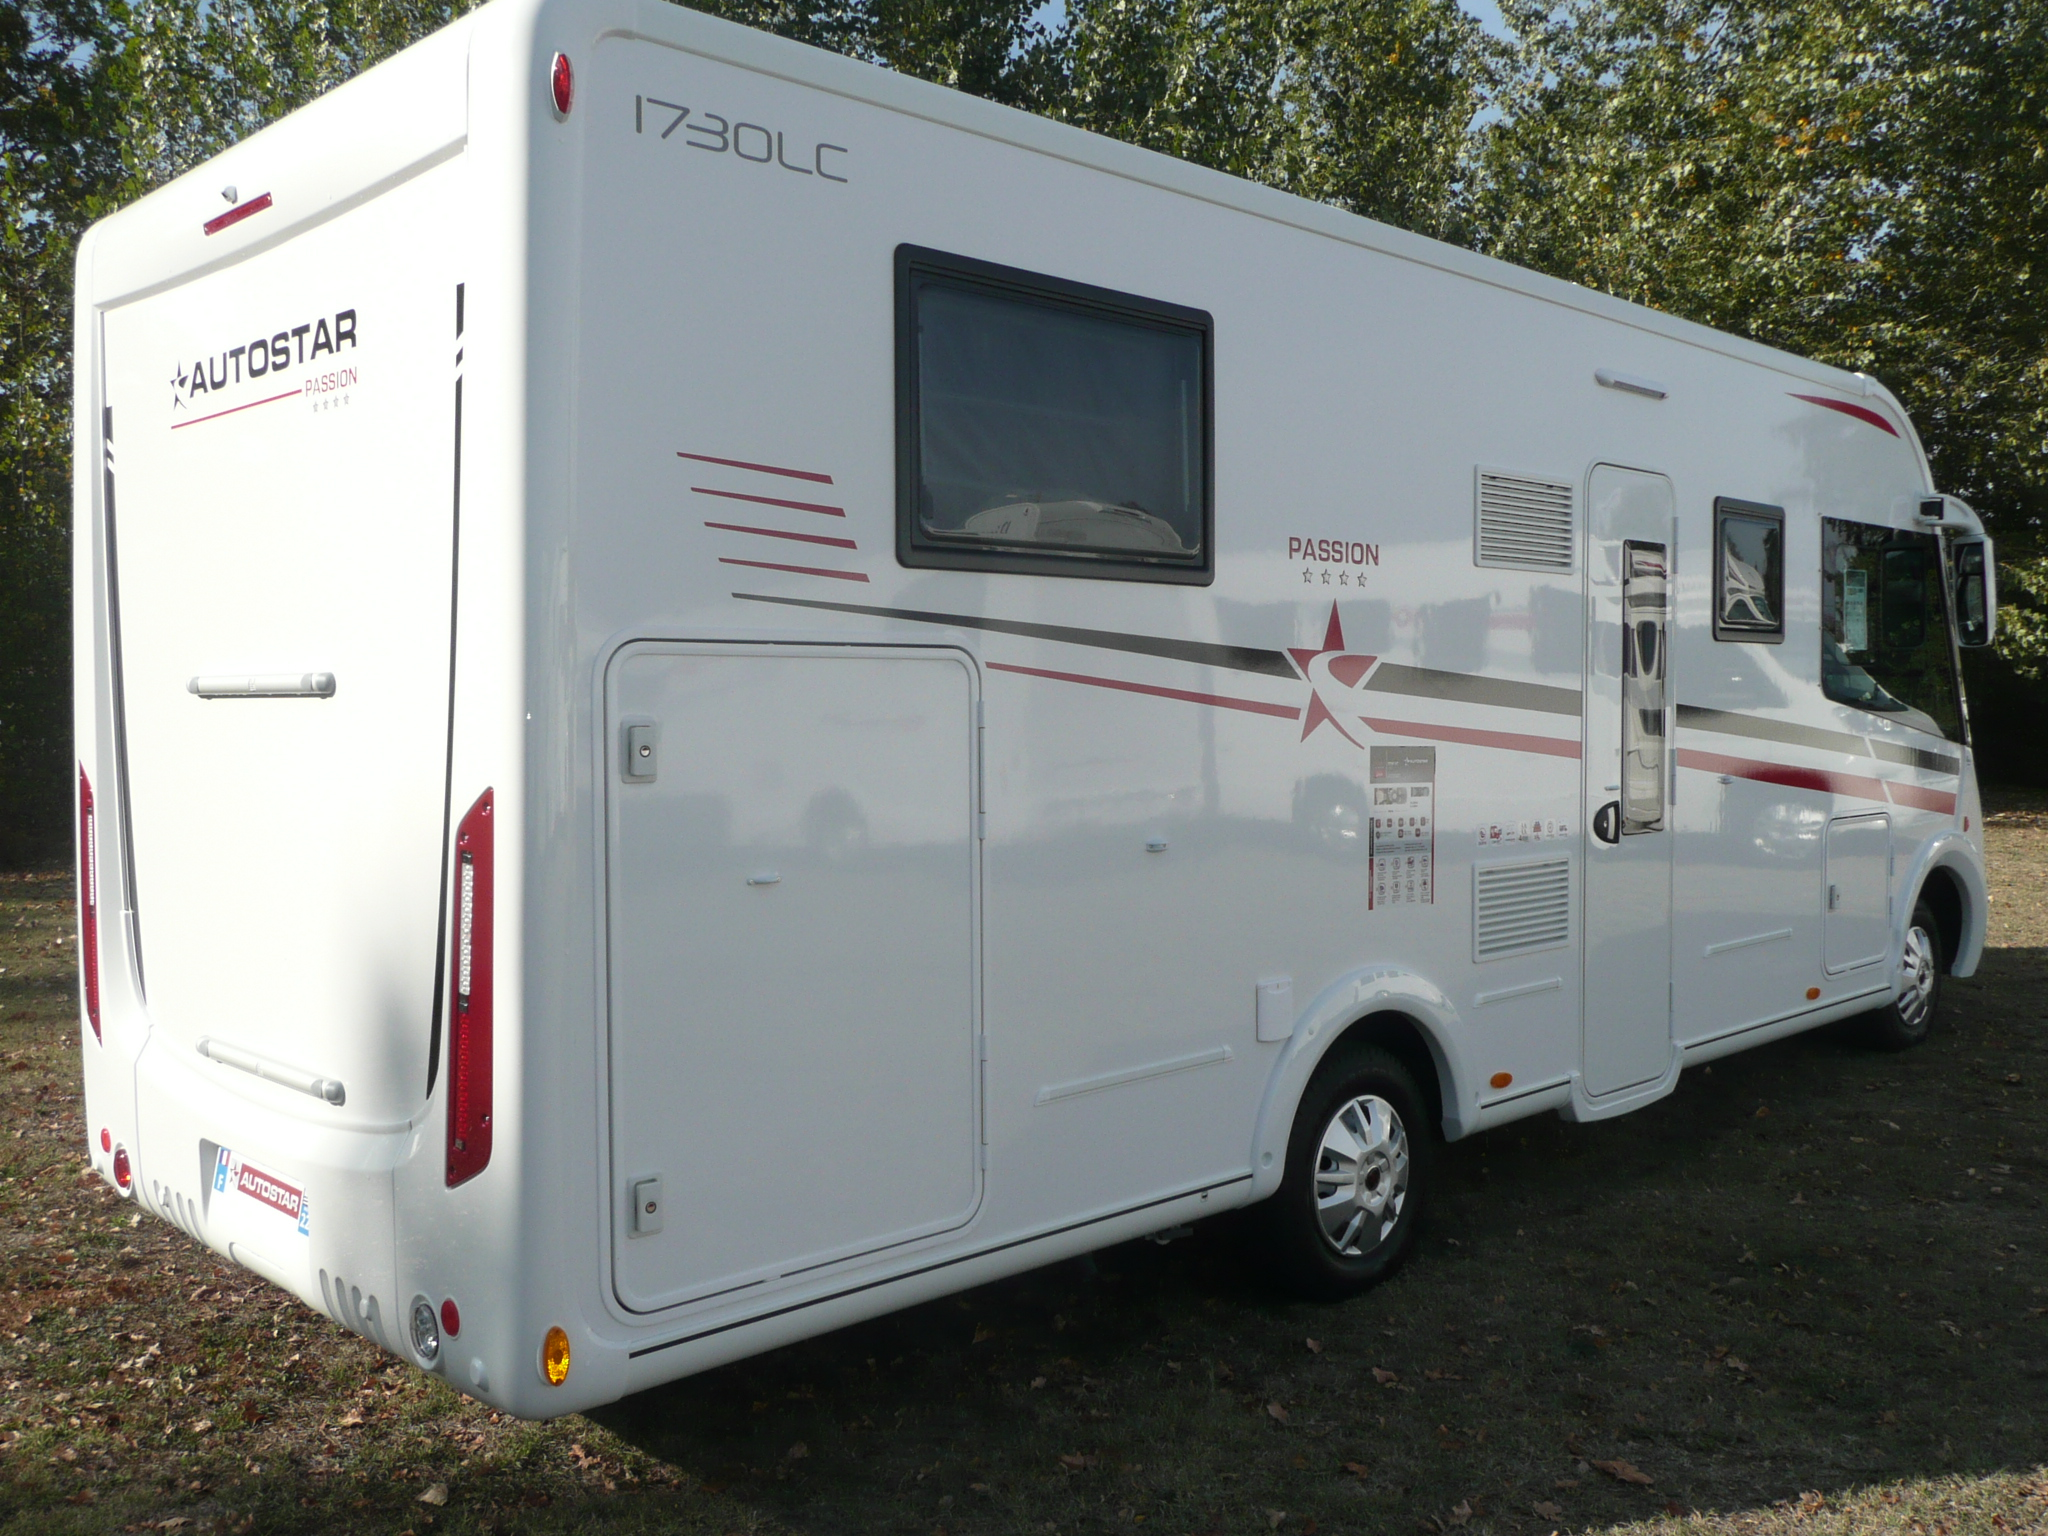 camping car neuf autostar int gral i730 lc passion sur fiat. Black Bedroom Furniture Sets. Home Design Ideas